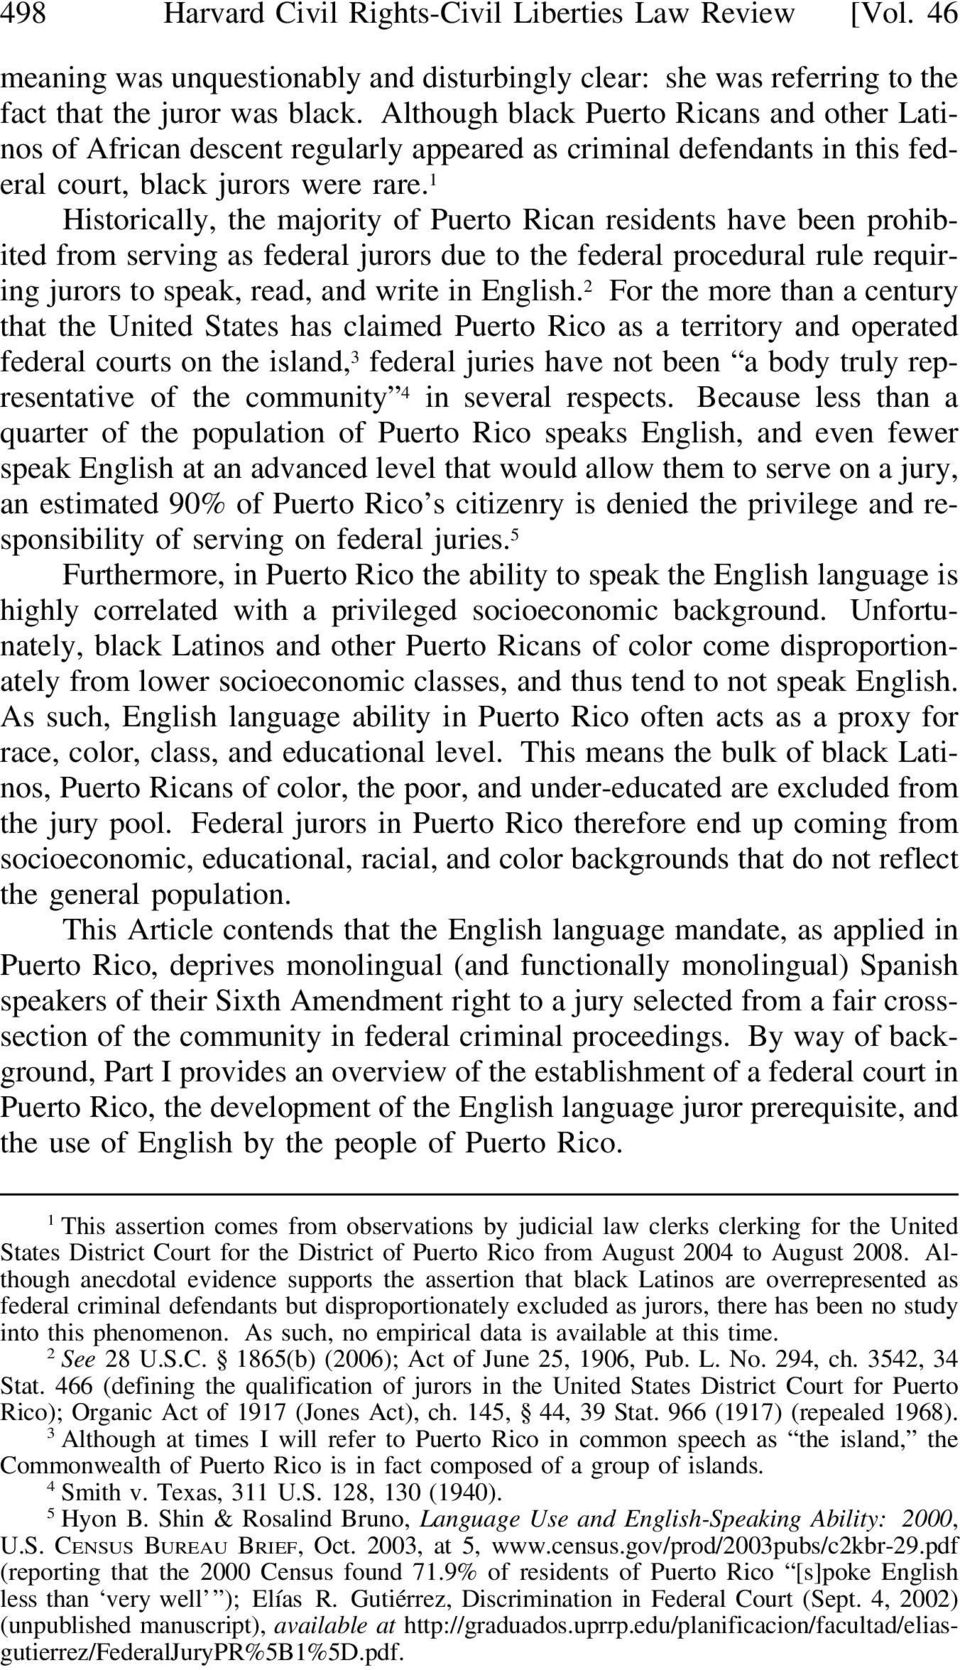 1 Historically, the majority of Puerto Rican residents have been prohibited from serving as federal jurors due to the federal procedural rule requiring jurors to speak, read, and write in English.